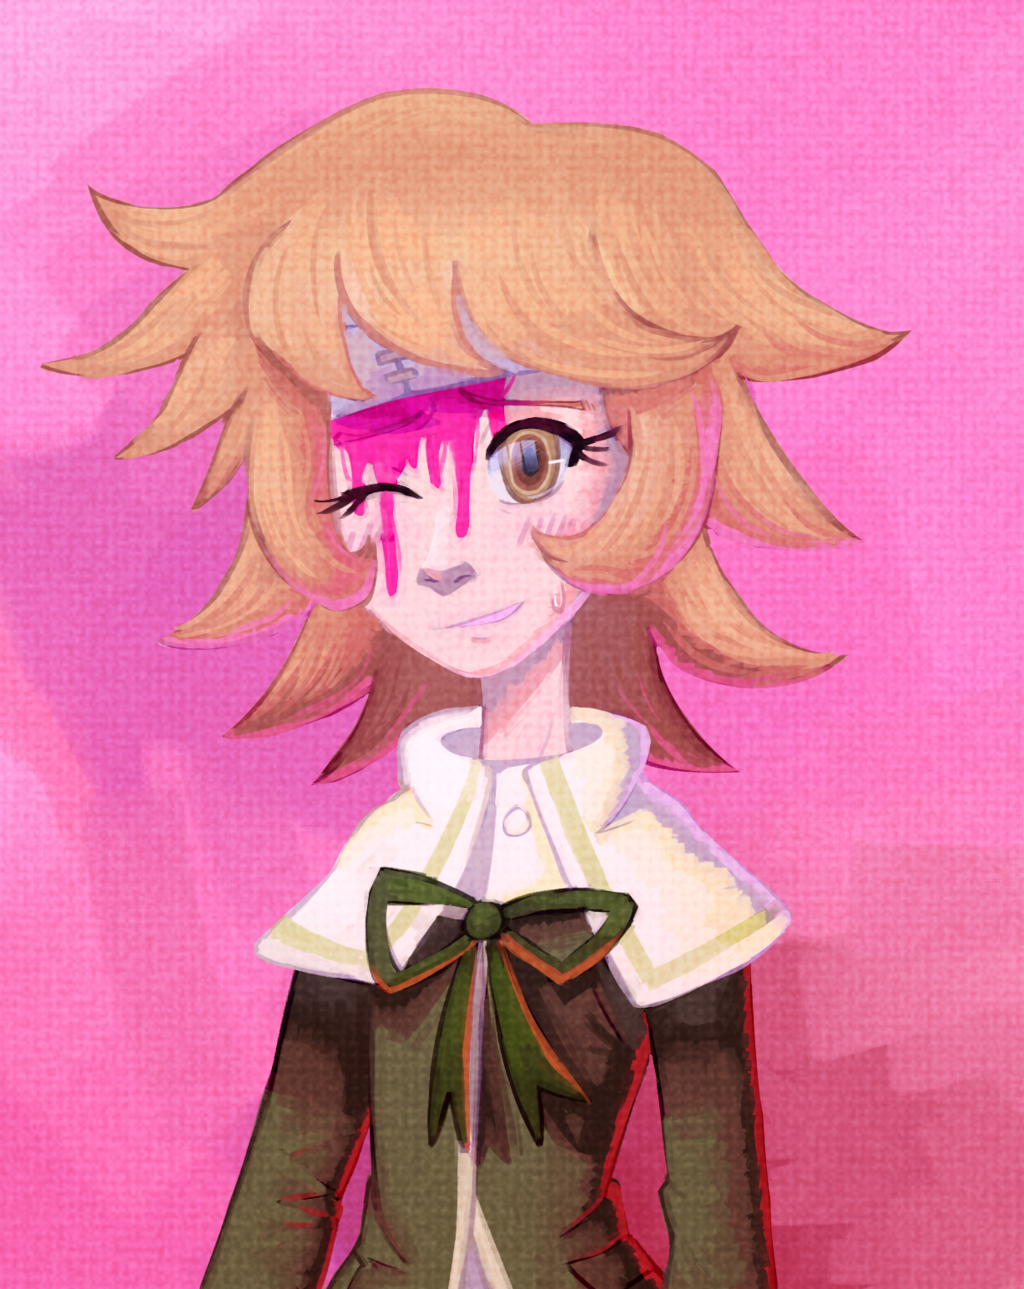 Most recent image: CHIHIRO IS OKAY